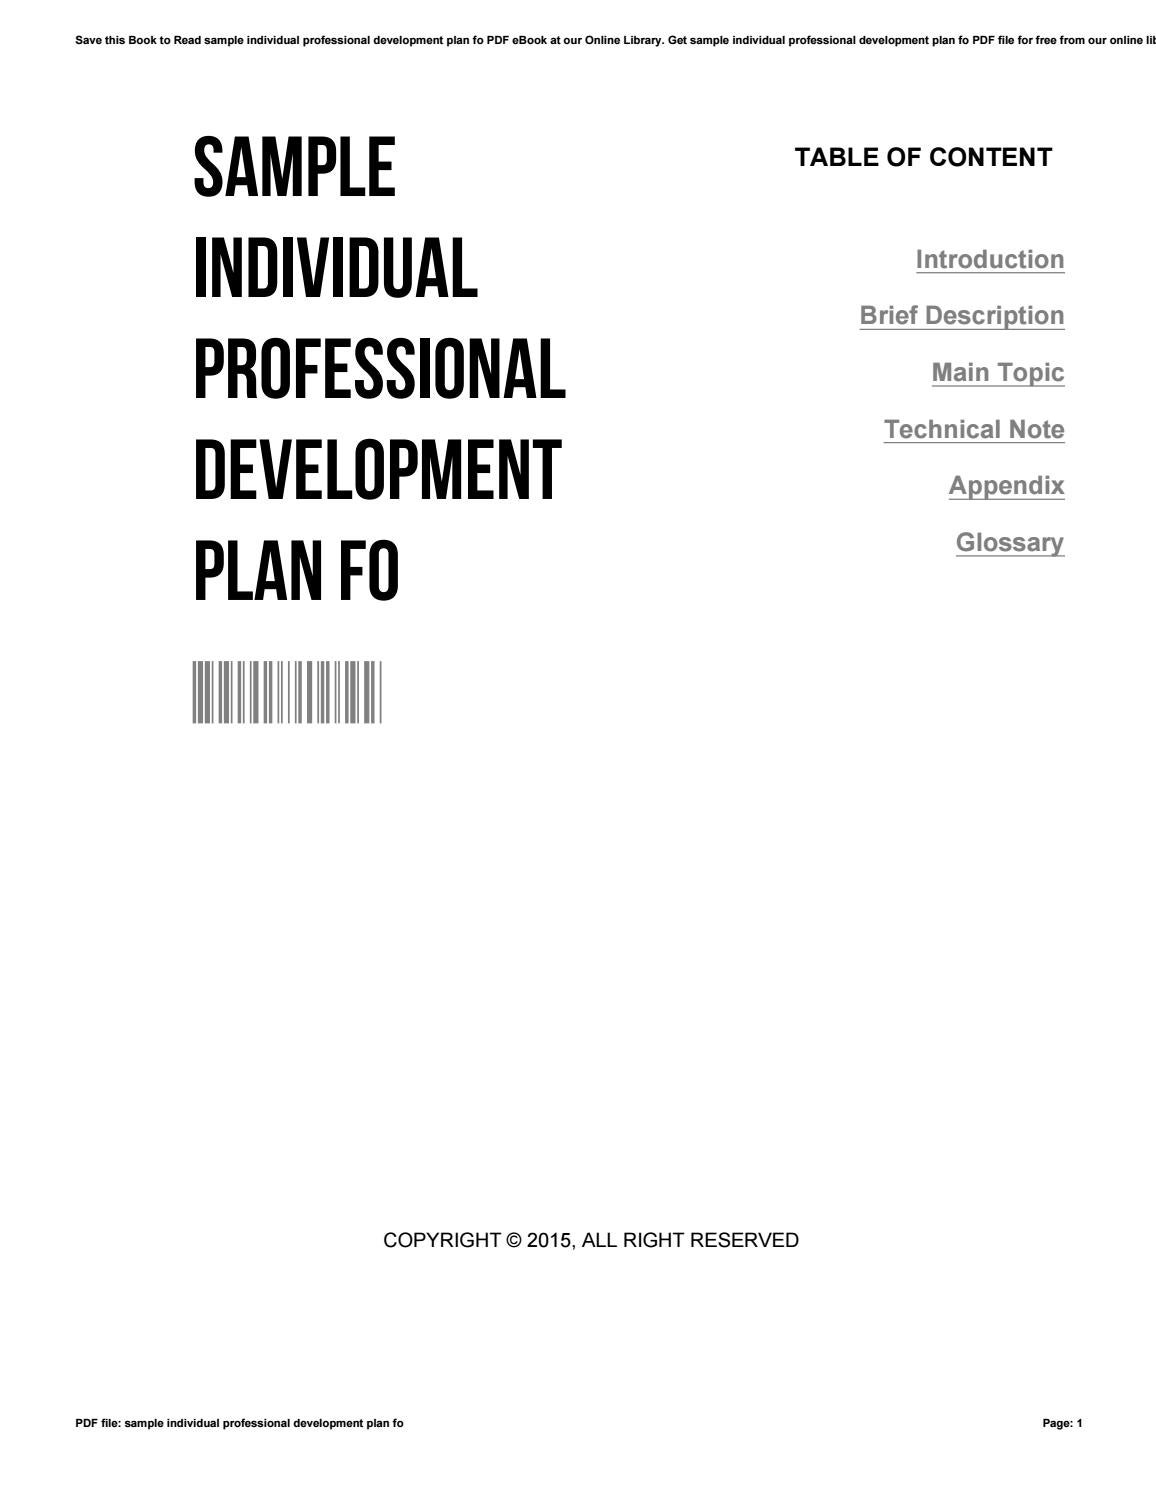 Sample individual professional development plan fo by